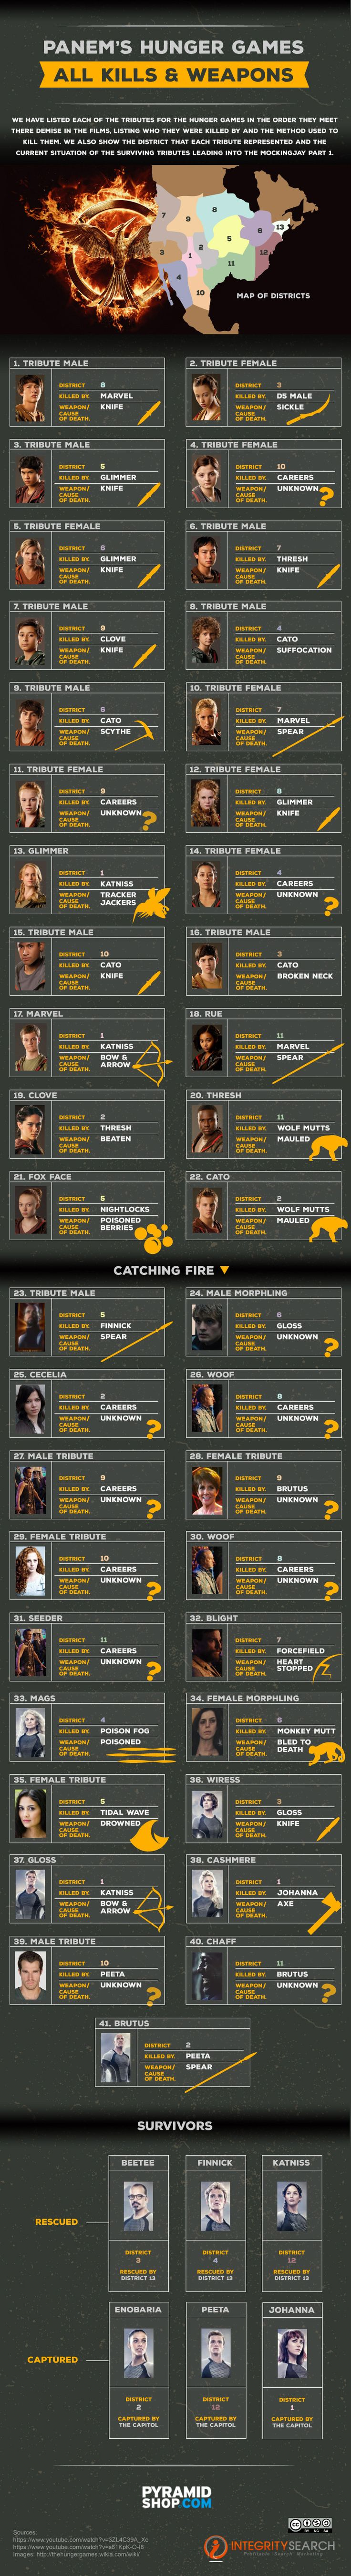 This is from the Hunger Games, Catching Fire, and the survivors that will be in Mockingjay part 1 and 2. By the way this isn't based off the books. Thank u for your consideration